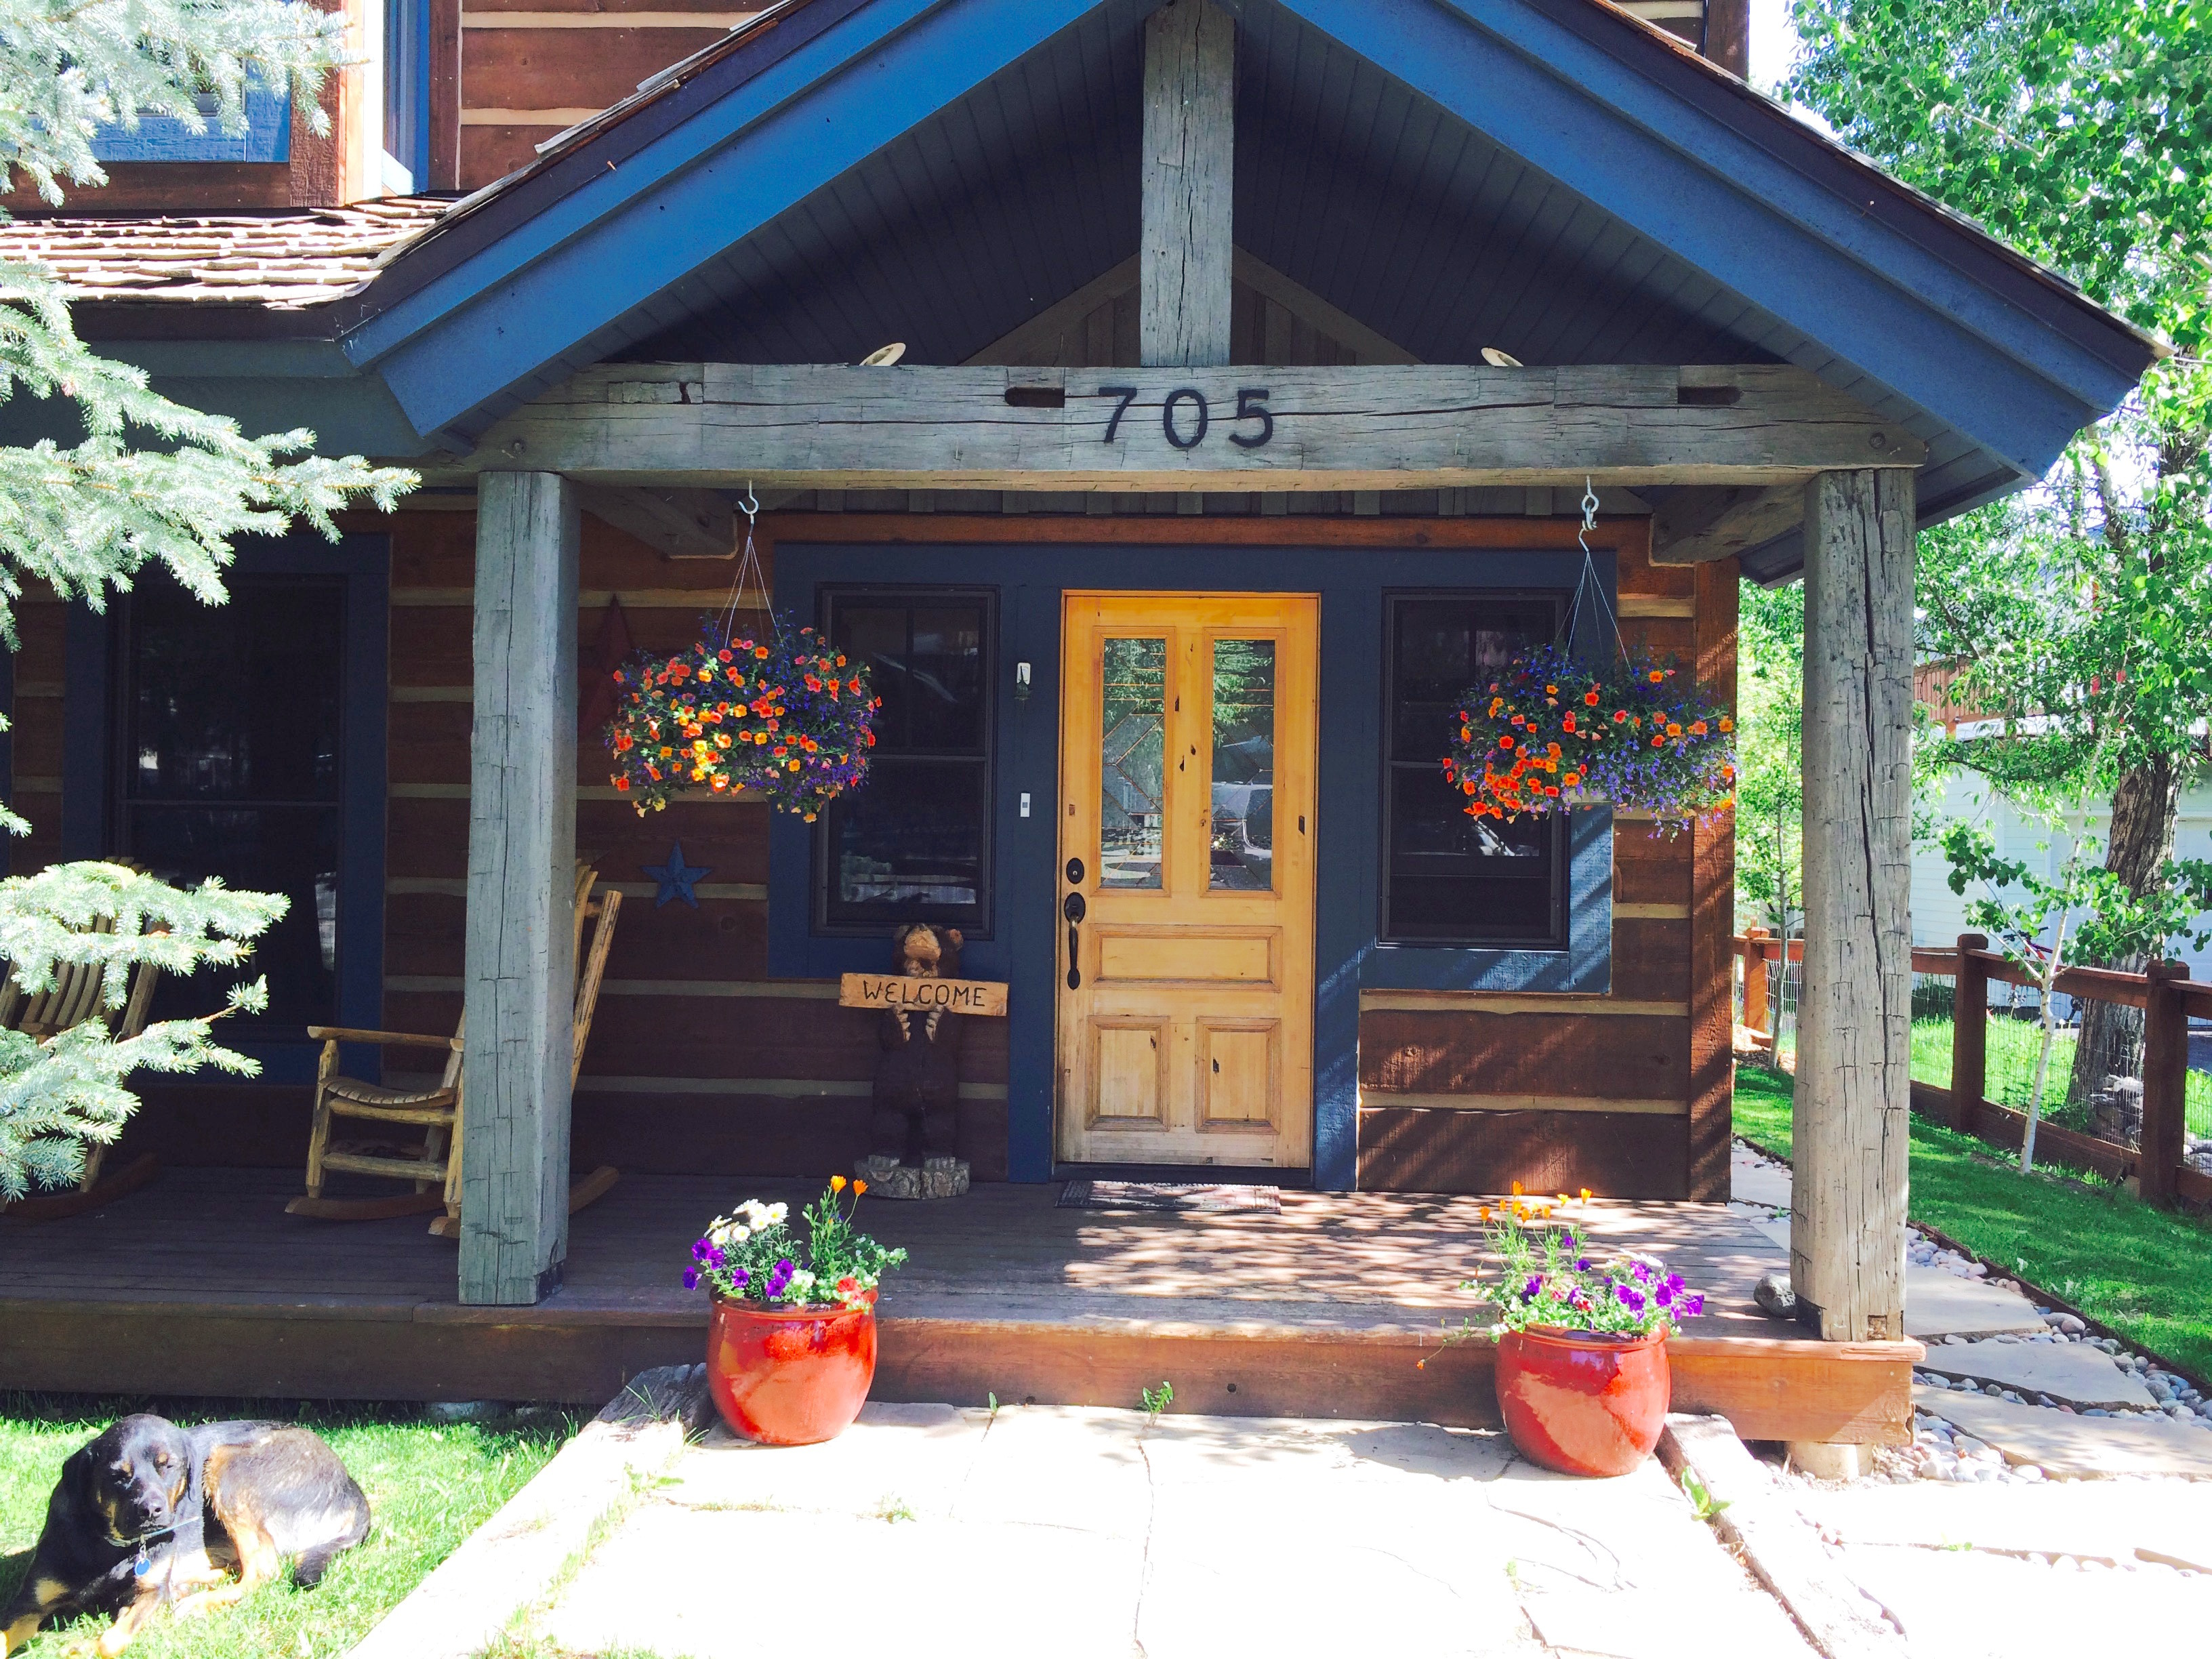 New Listing ~ 705 Teocalli Avenue, Crested Butte